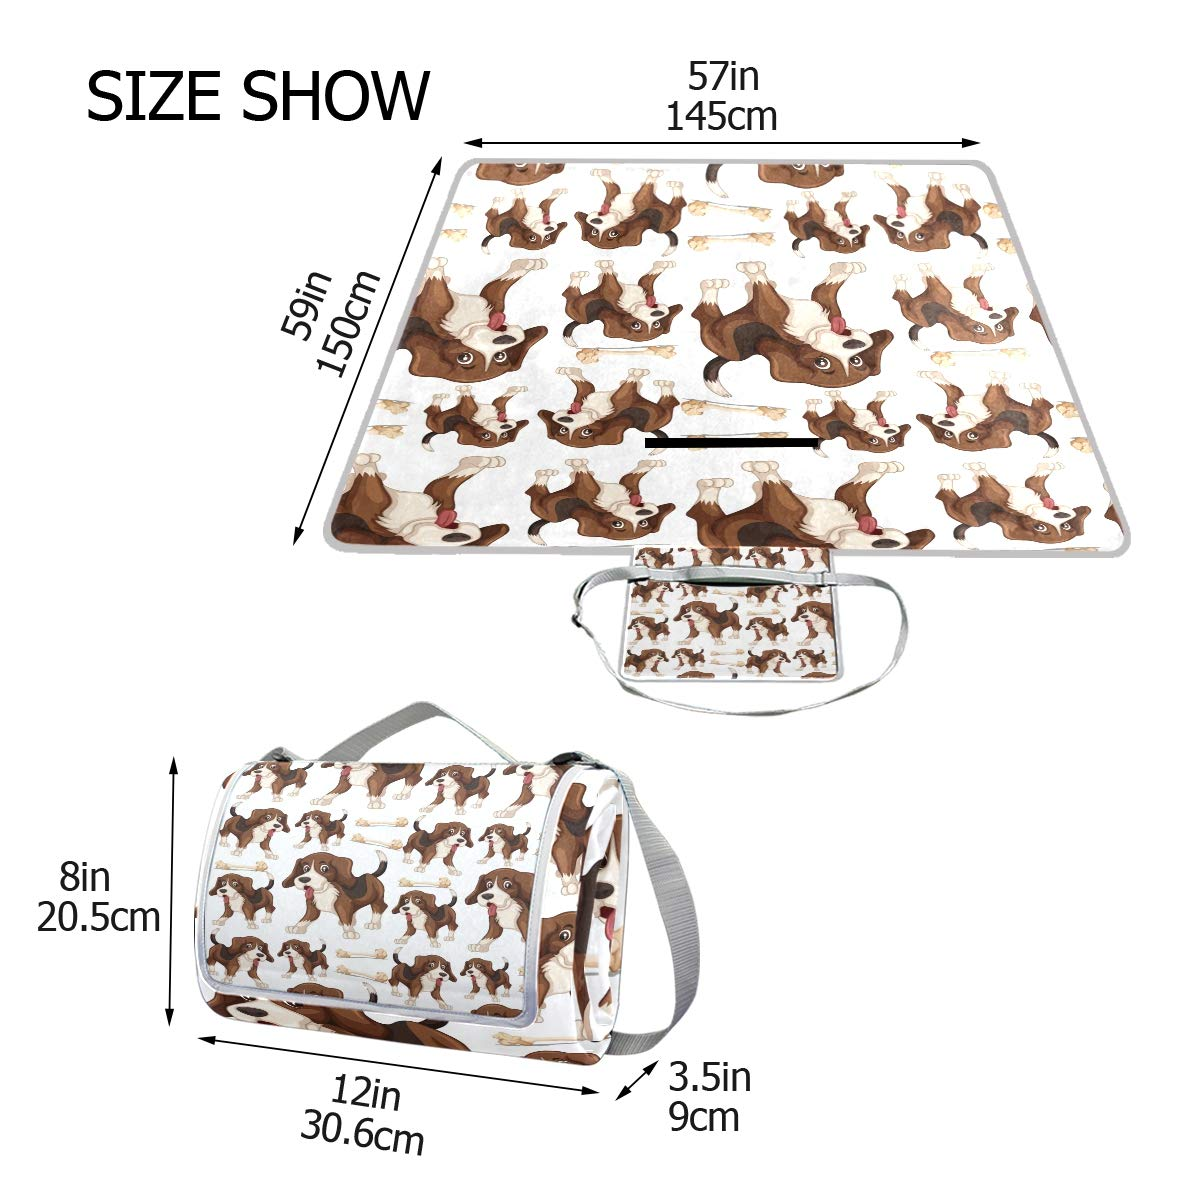 Bennigiry Beagle Dog Picnic Blanket Mat Extra Large Foldable and Waterproof Family Camping Mat for Outdoor Beach Hiking Grass Travel